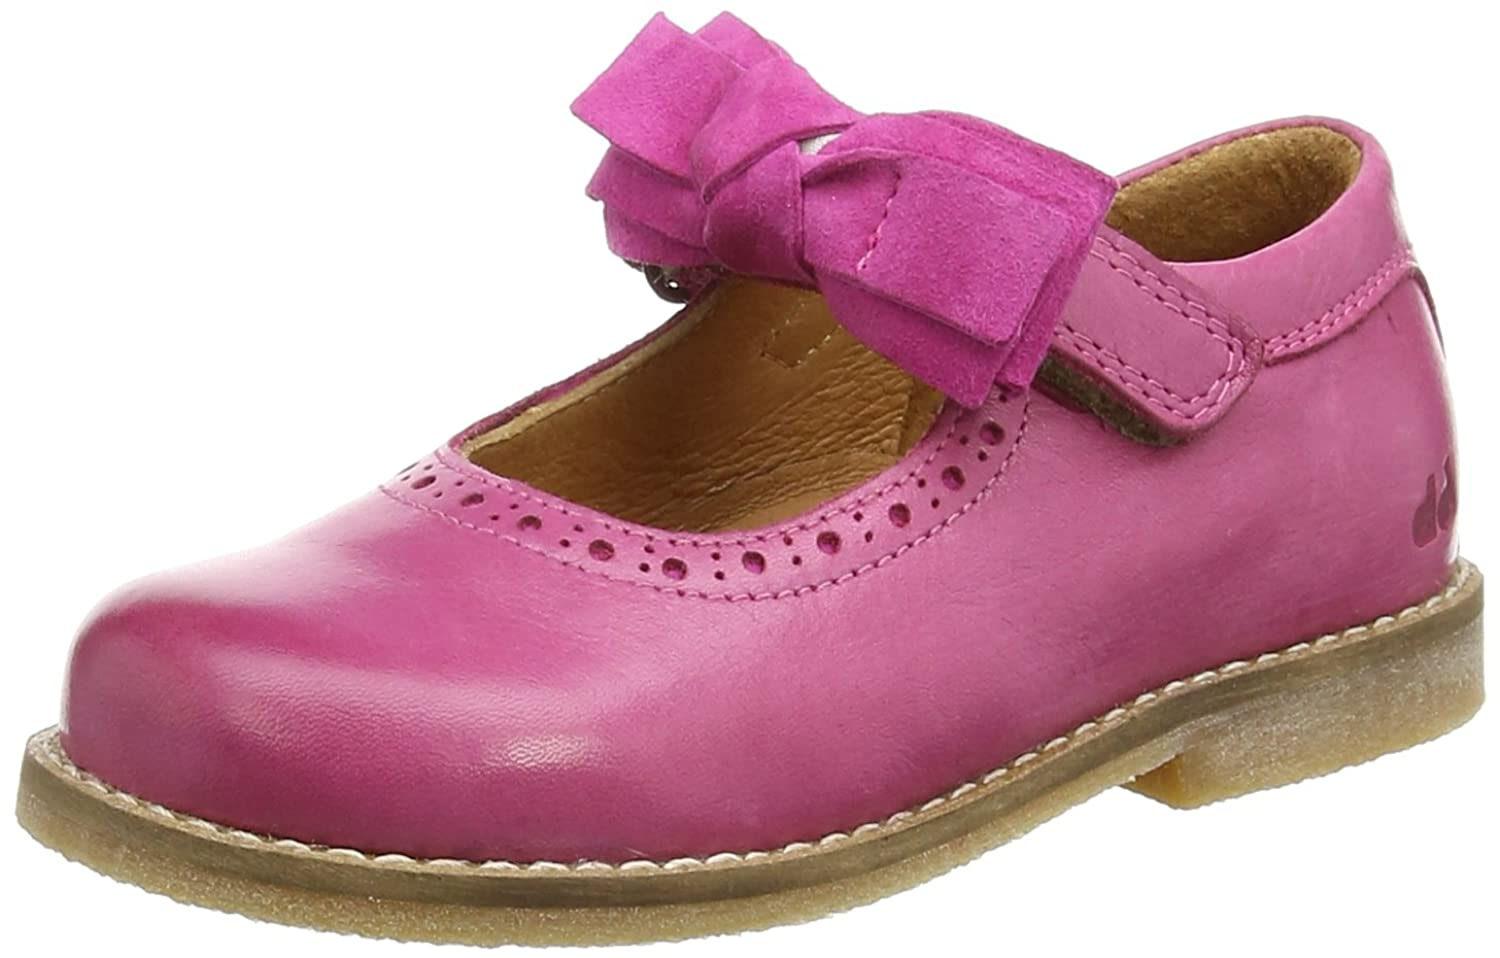 FRODDO Girls Mary Jane Shoes Fuchsia G3140045, Mary Jane Fille